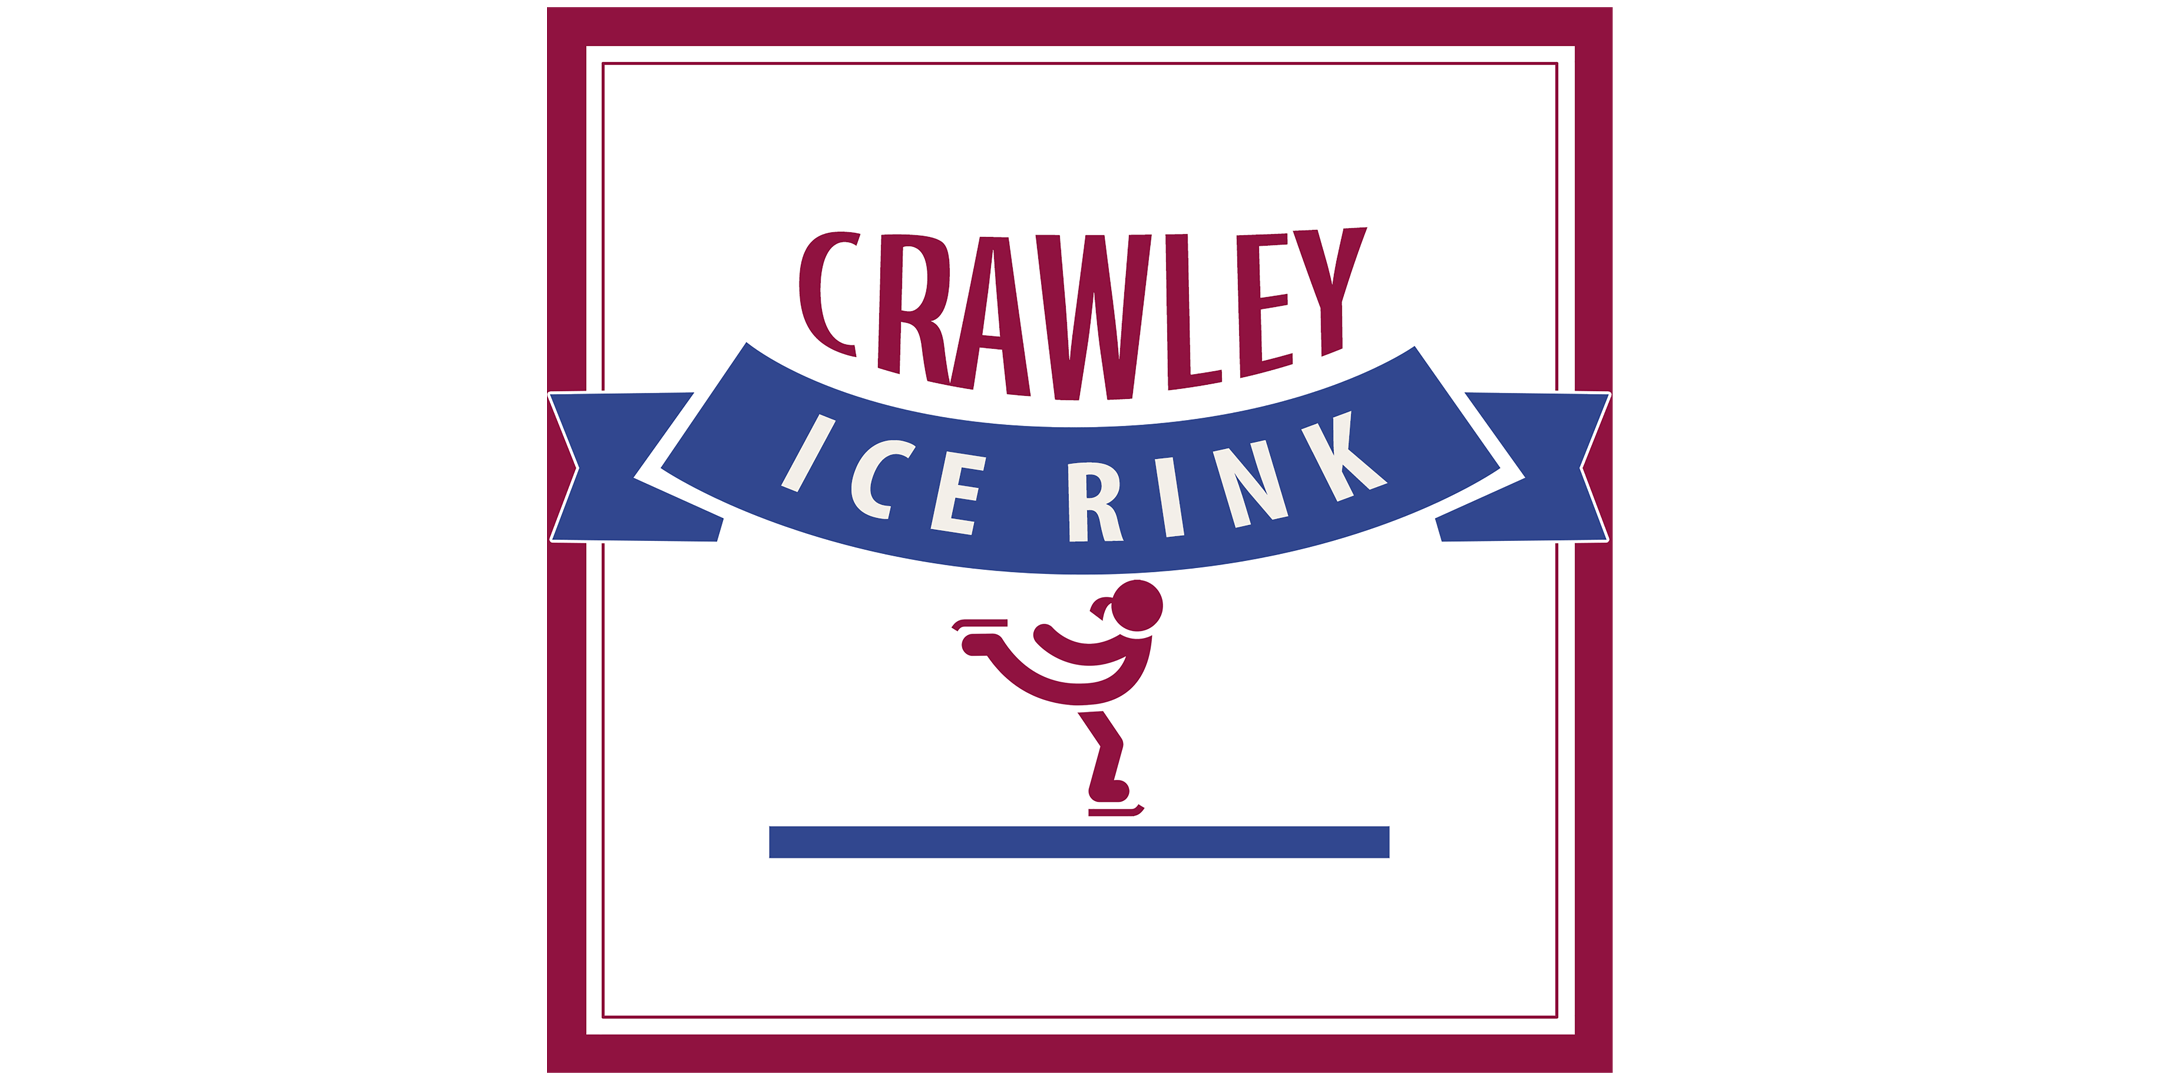 Crawley Ice Rink - 12th December (Off Peak)